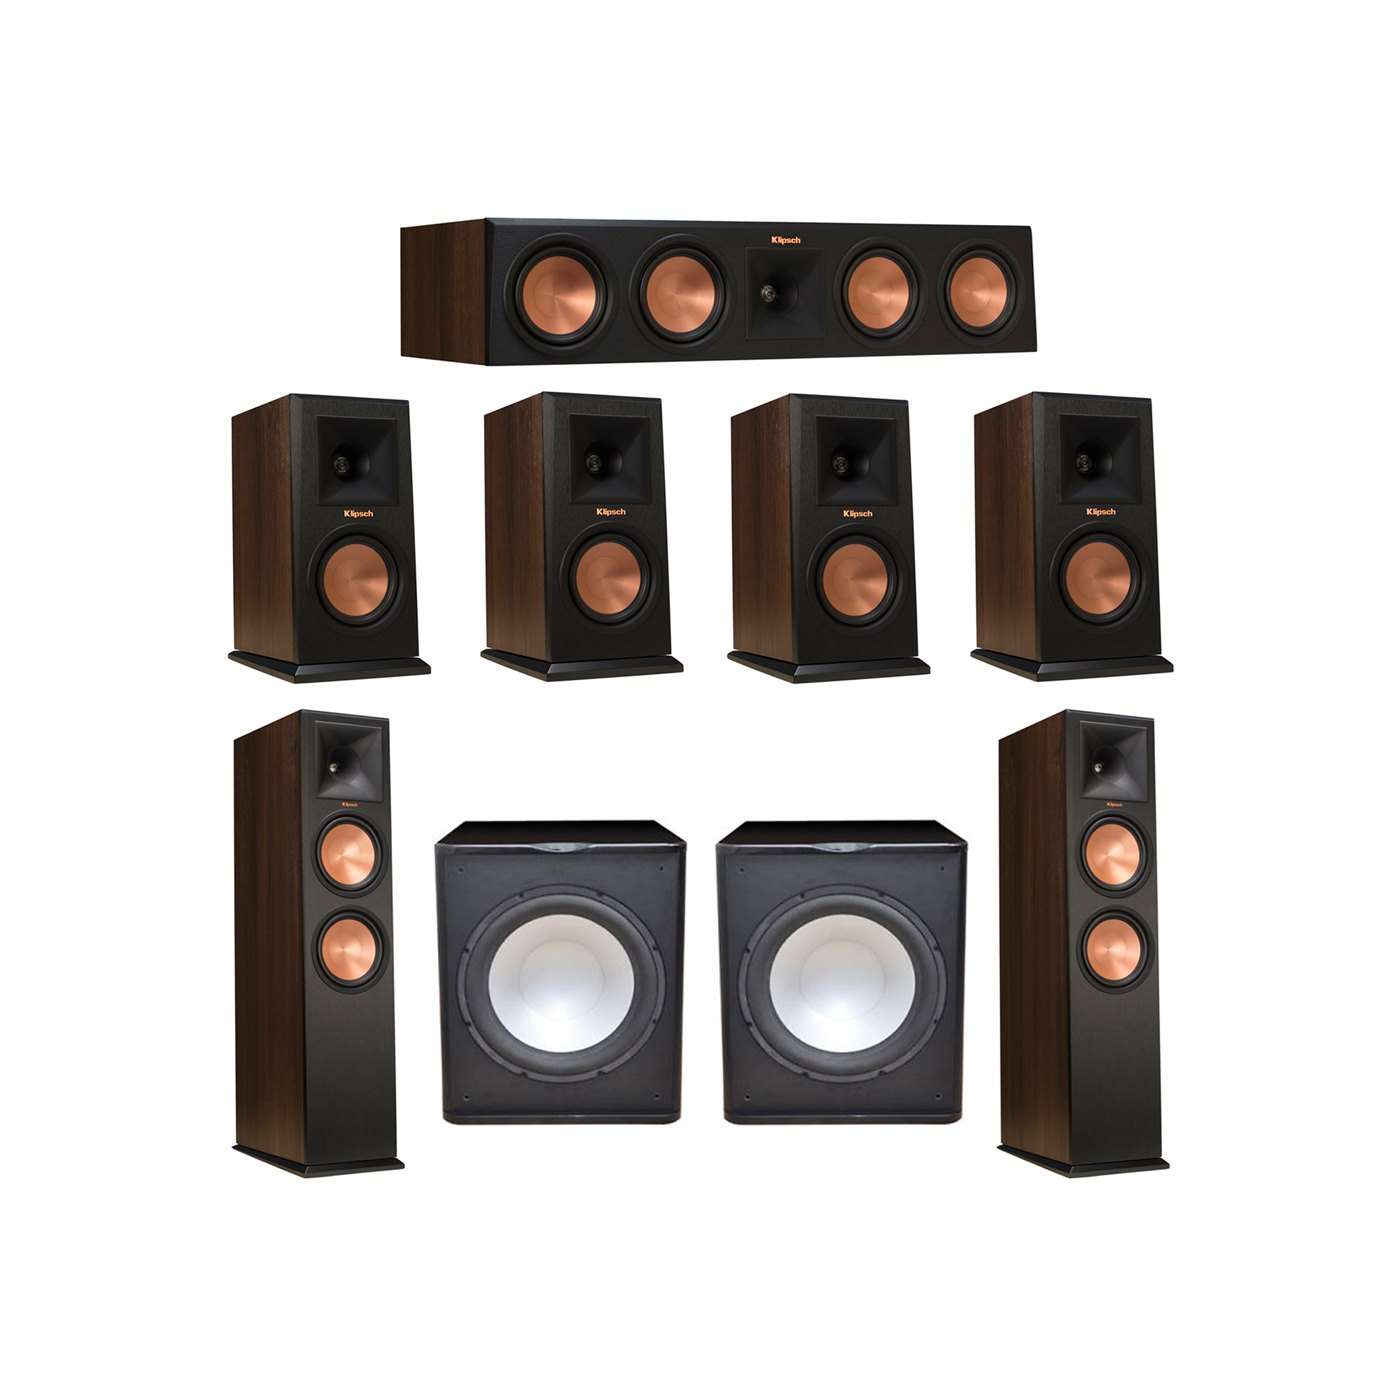 Klipsch 7.2 Walnut System with 2 RP-280F Tower Speakers, 1 RP-450C Center Speaker, 4 Klipsch RP-150M Bookshelf Speakers, 2 Premier Acoustic PA-150 Subwoofer